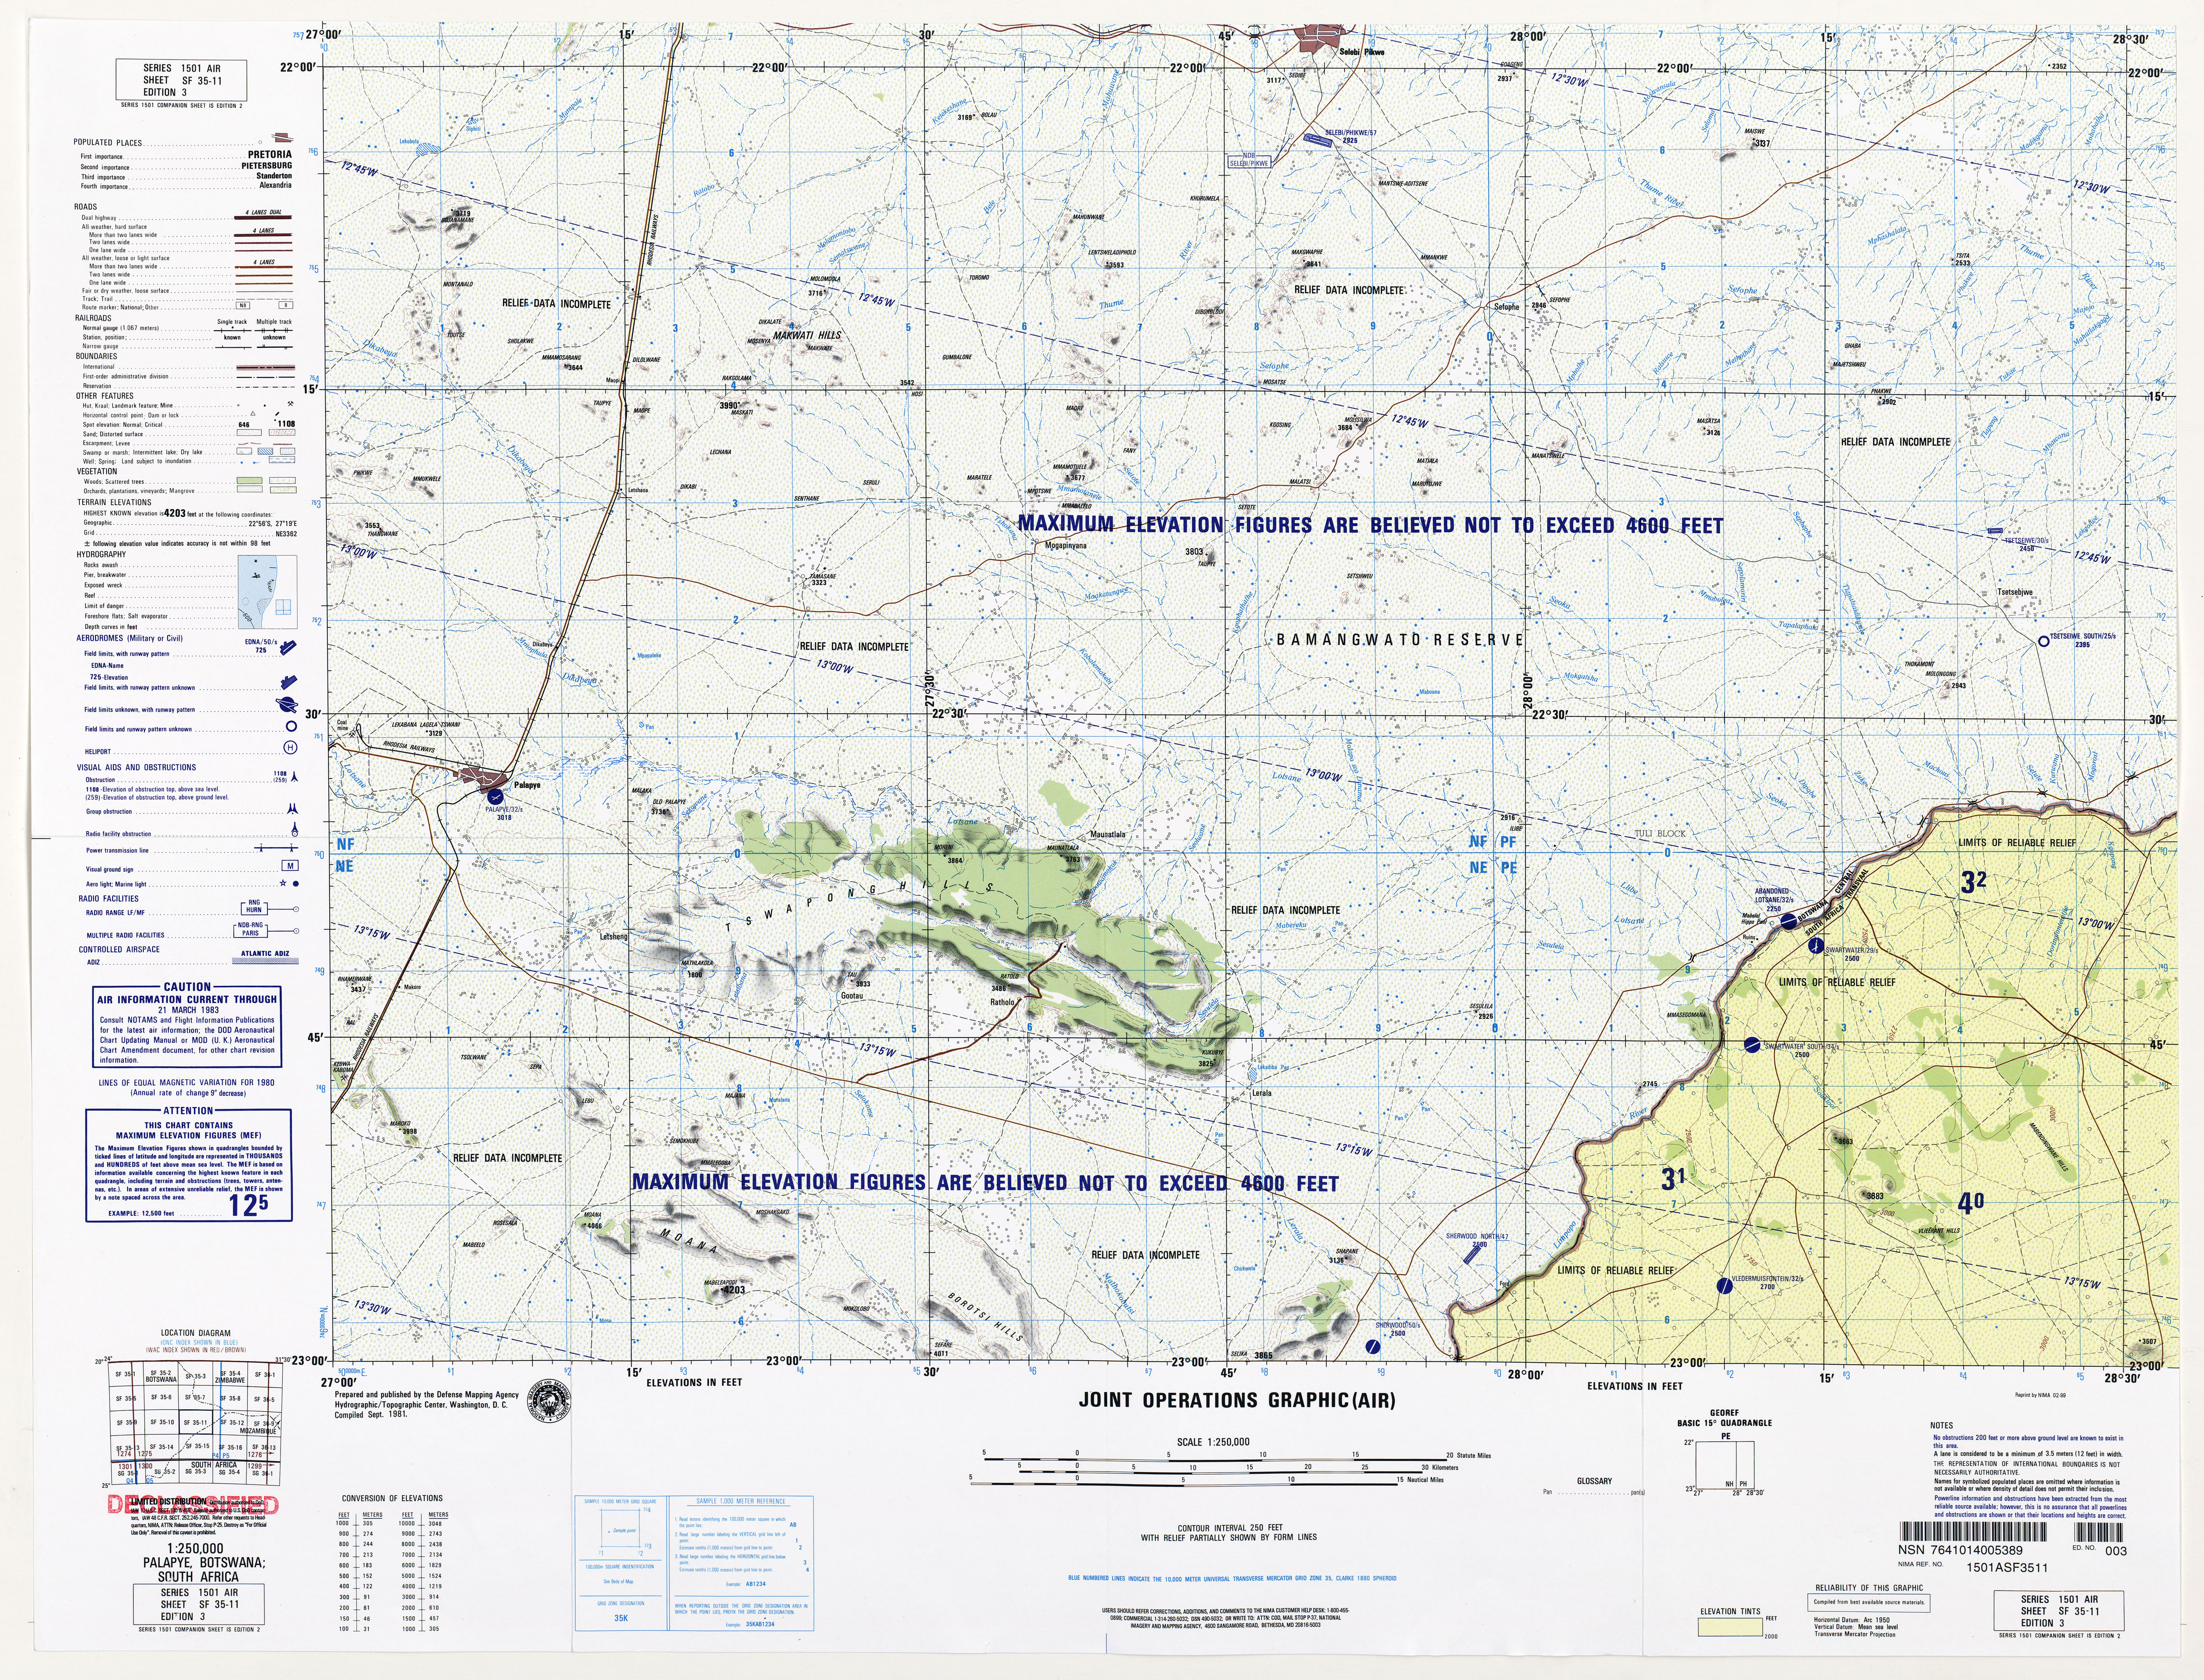 Botswana South Africa Map.Southern Africa Joint Operations Graphic Perry Castaneda Map